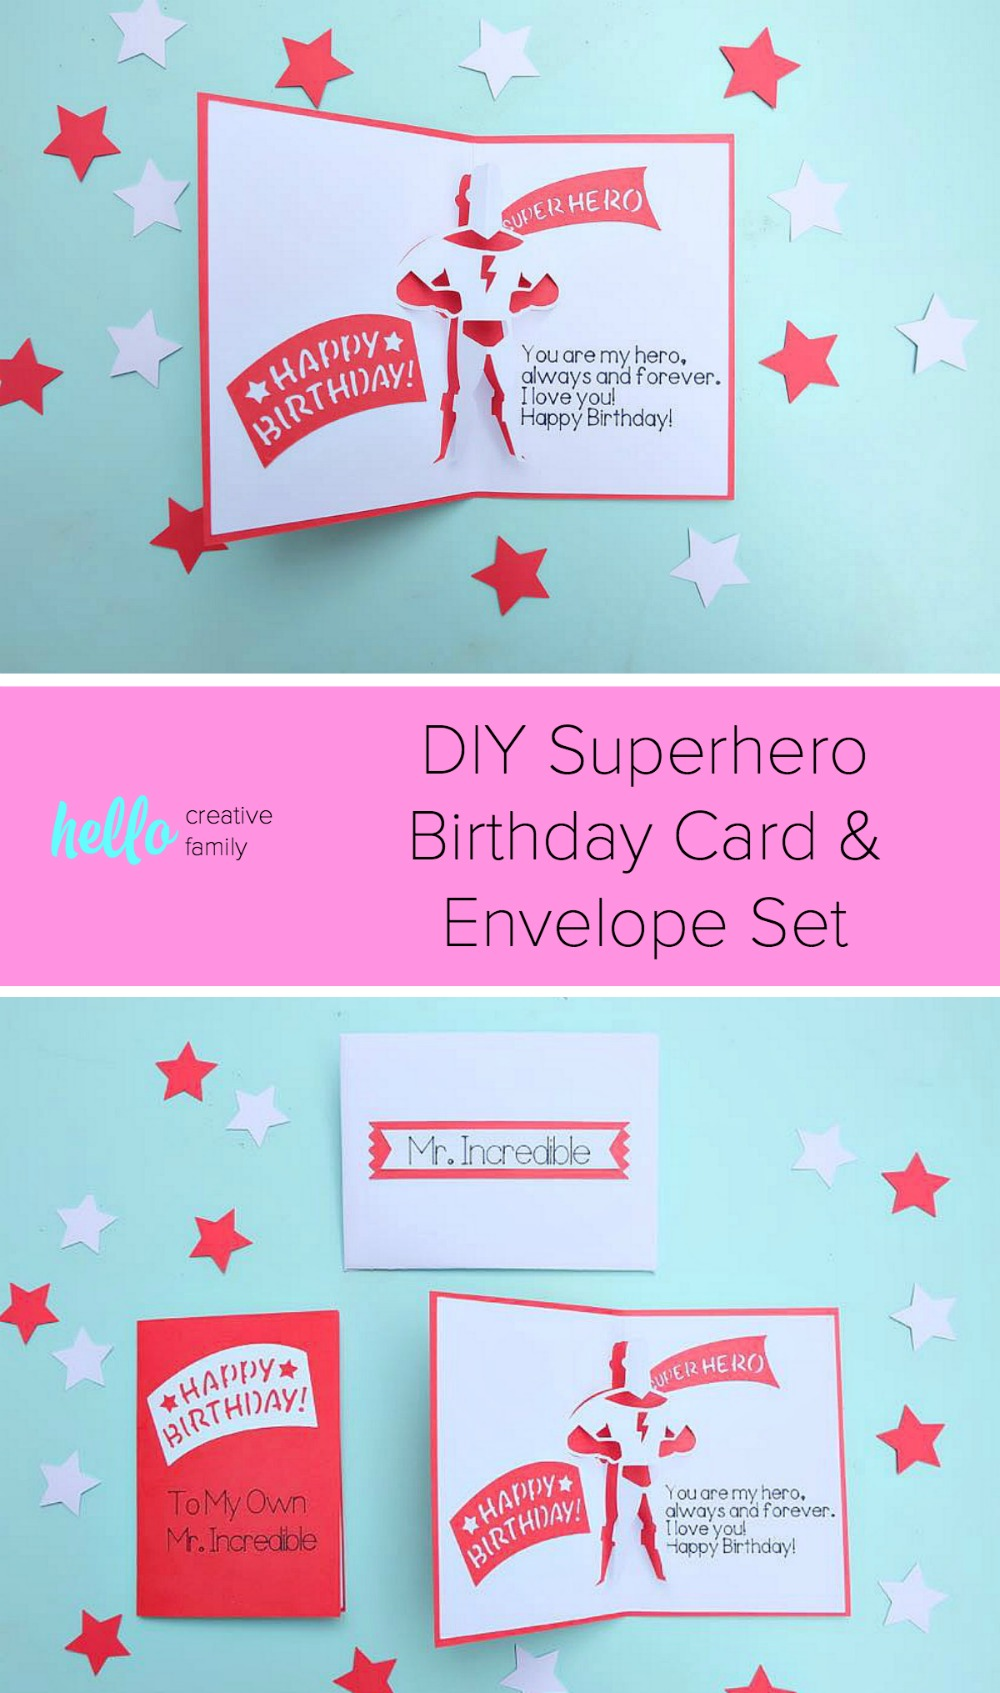 """Say """"Happy Birthday"""" to your favorite superhero with this DIY Superhero Birthday Card and Envelope Set. Made using your Cricut, this project is easy enough for those new to card making but packs a big impact. The perfect handmade element for a birthday gift for fans of Marvel, The Incredibles and DC Comics. #Cricut #CricutMade #Superhero #Birthday"""